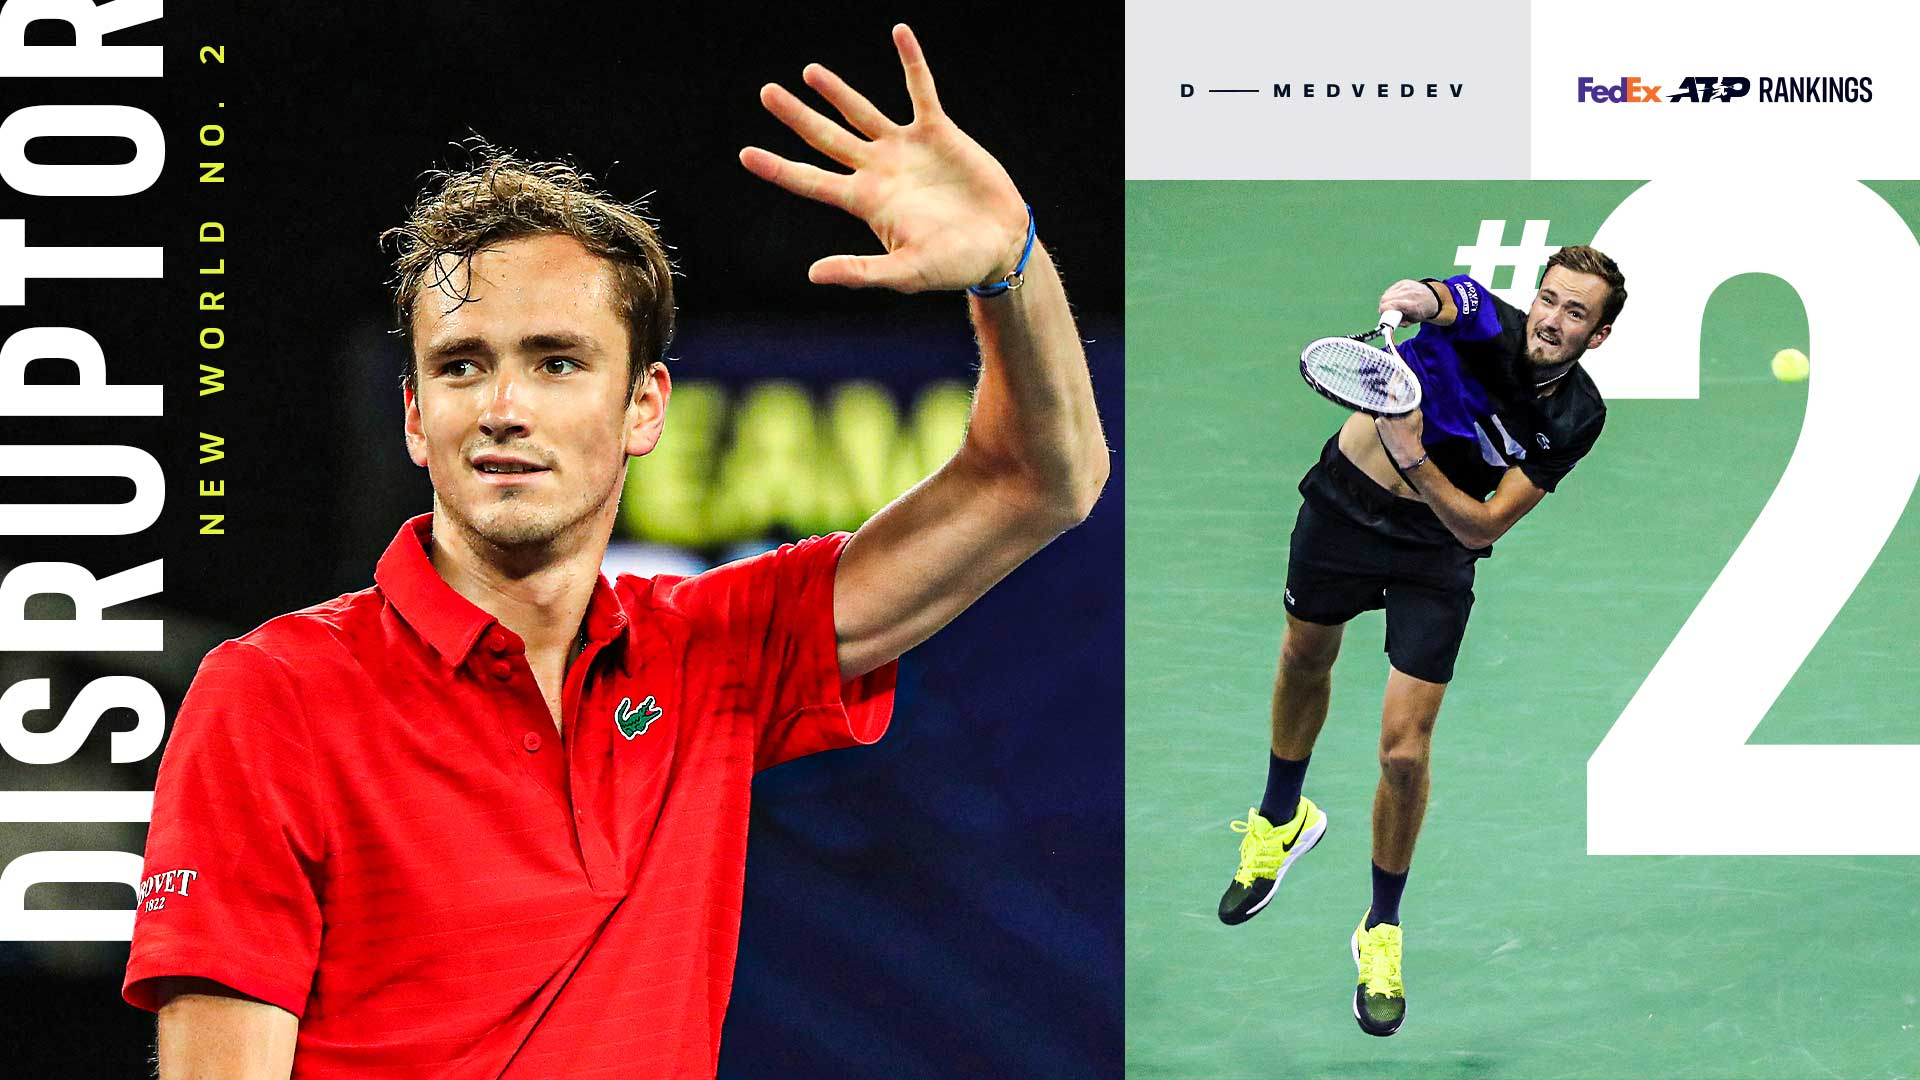 Daniil Medvedev is the first player outside of the Big Four to enter the Top 2 in the FedEx ATP Rankings since Lleyton Hewitt in July 2005.